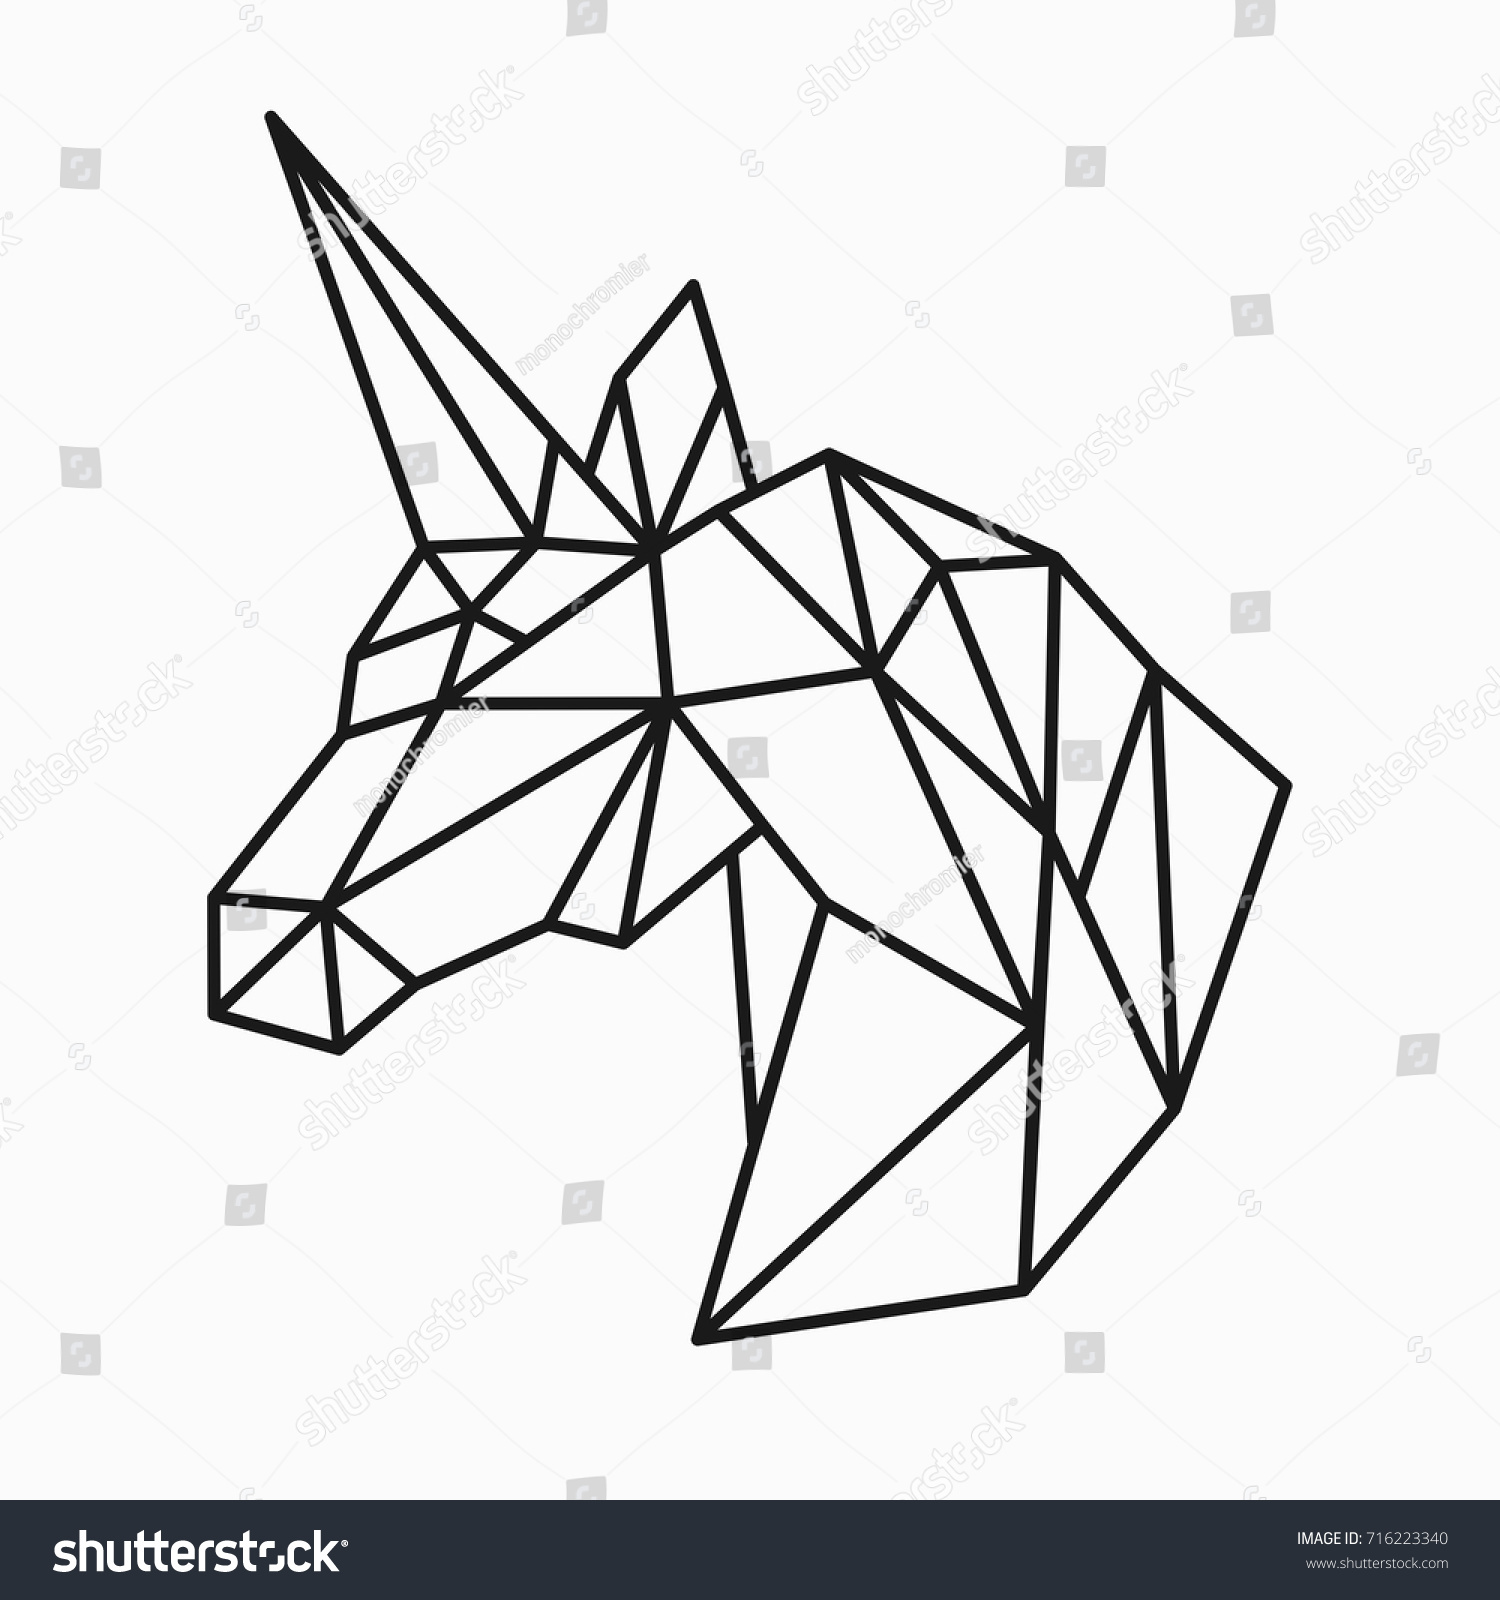 Origami Unicorn Diagram Free Wiring Diagrams Sword Http Wwworigamiguidecom Origamiwolfhtml Vector Polygonal Triangular Illustration Animal Head Stock Easy Animals Step By